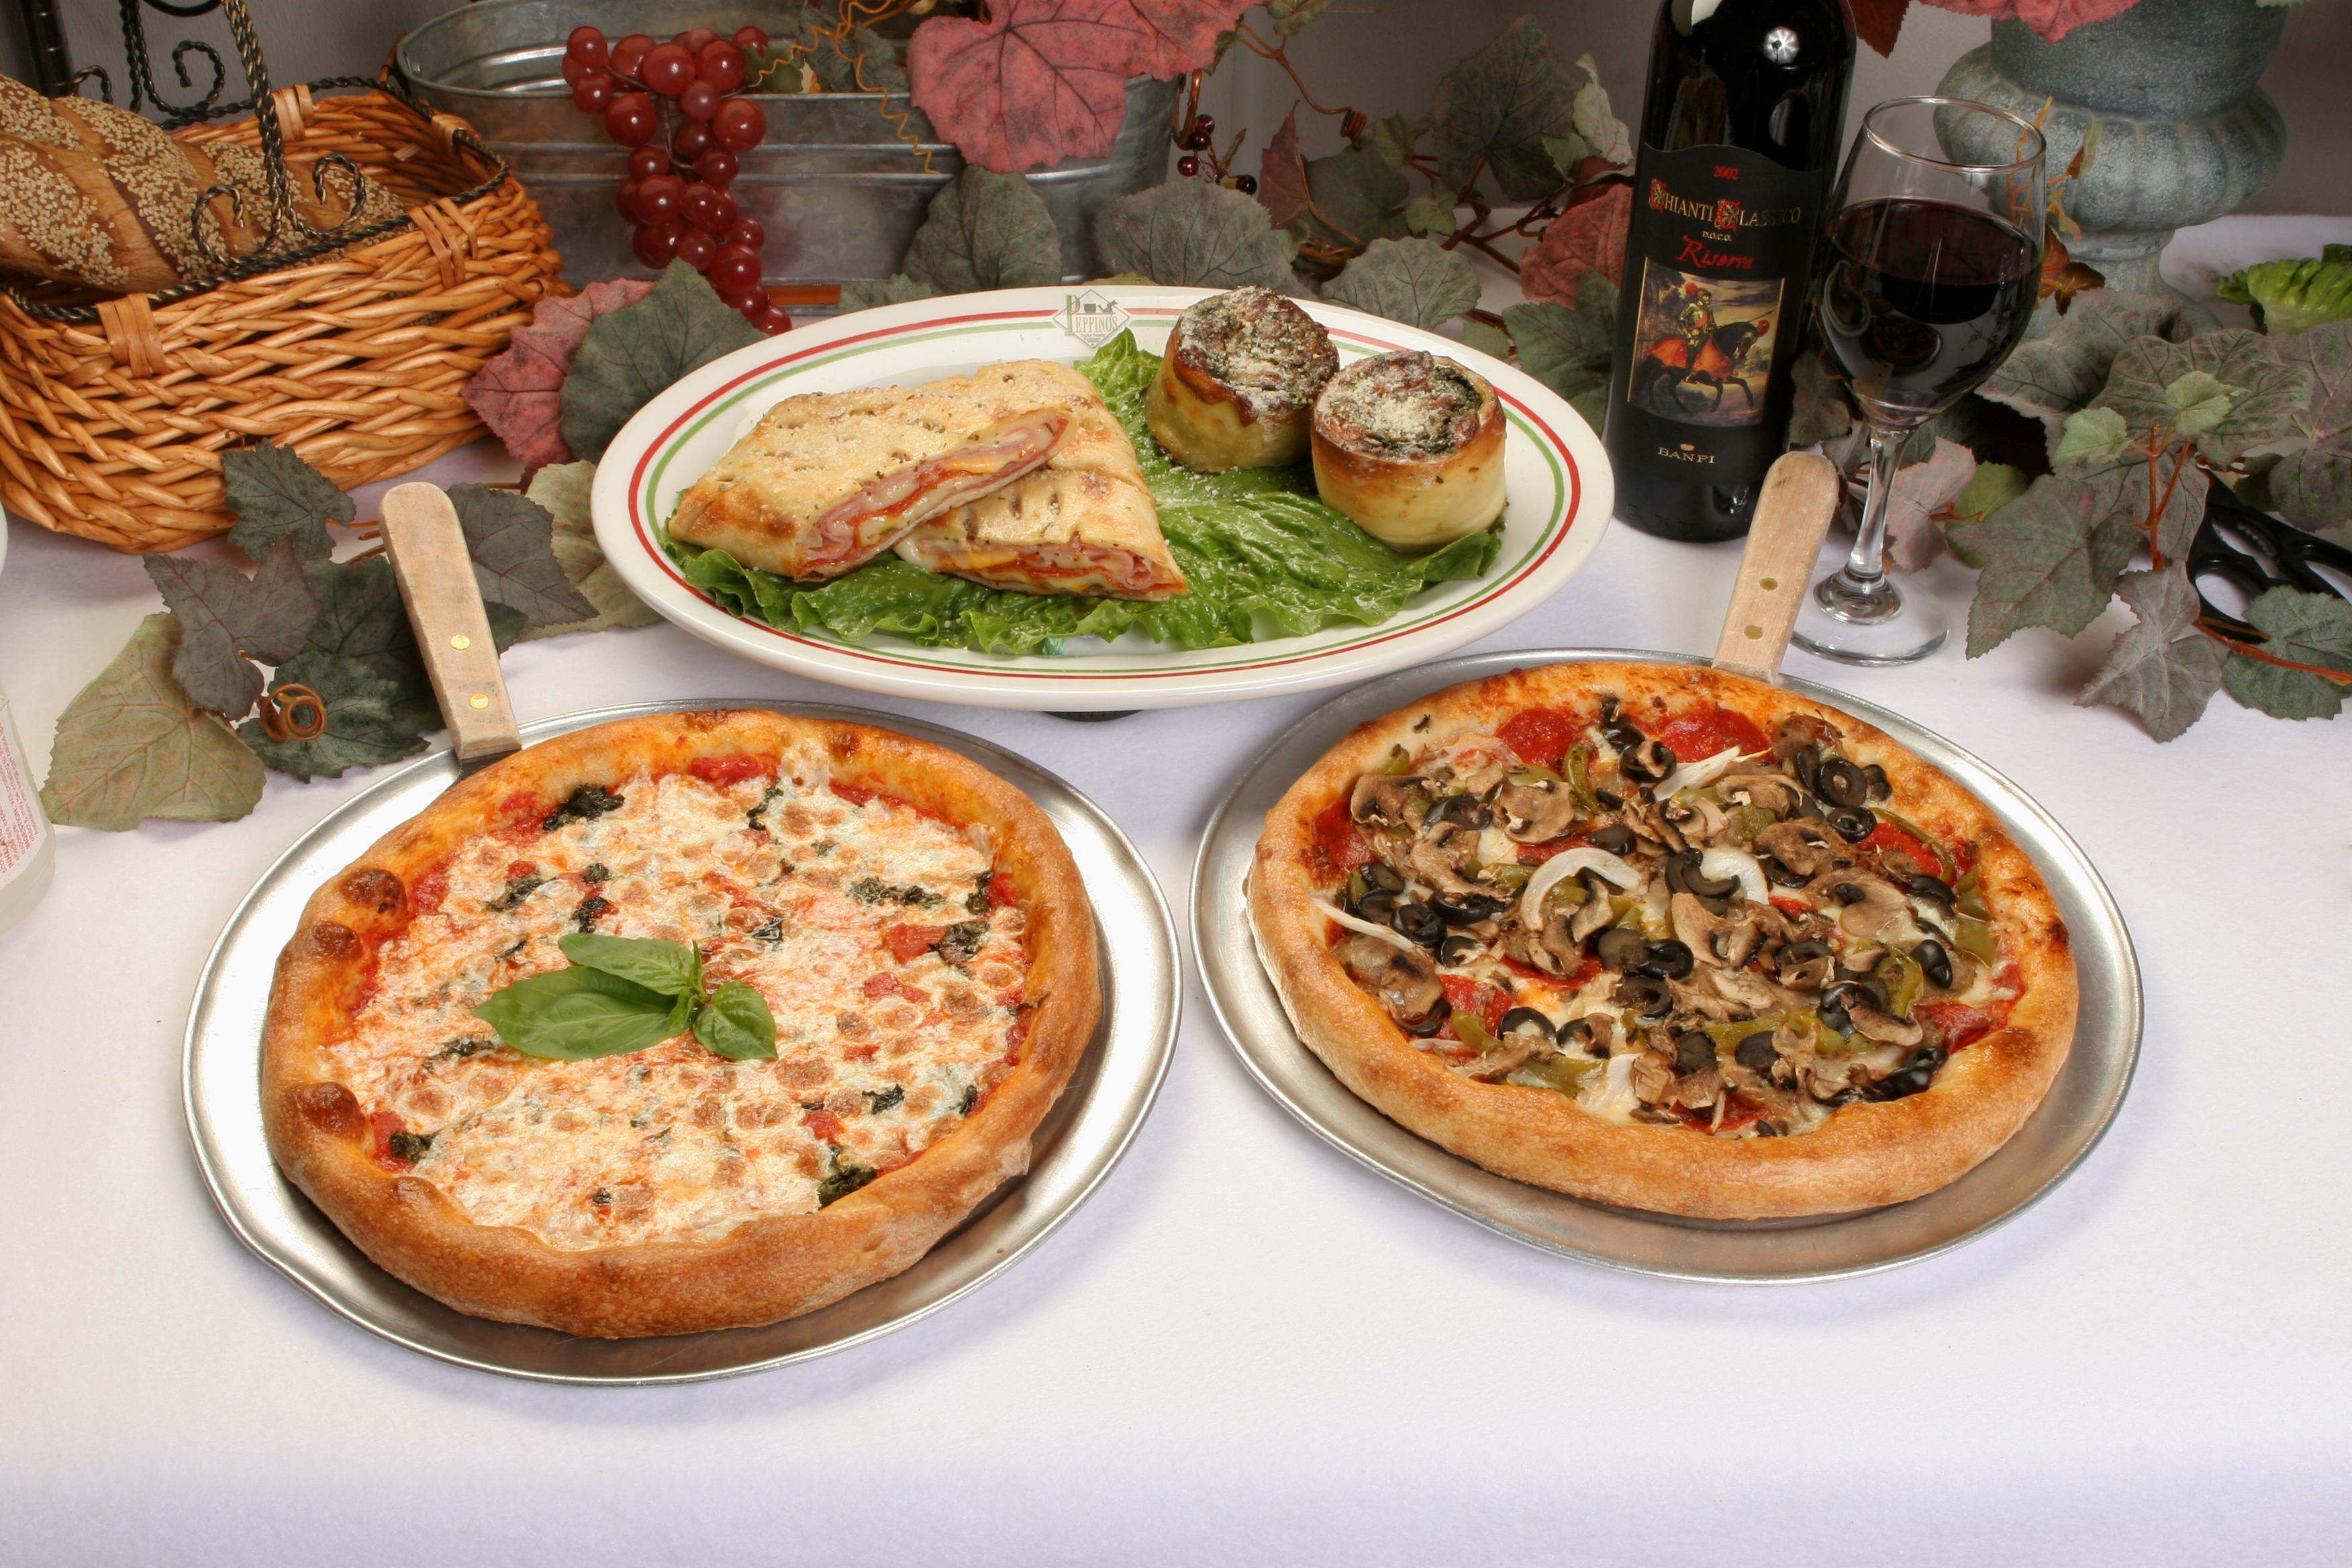 Peppino S Italian Restaurant: Best Of Foothill Ranch, CA & Things To Do Nearby